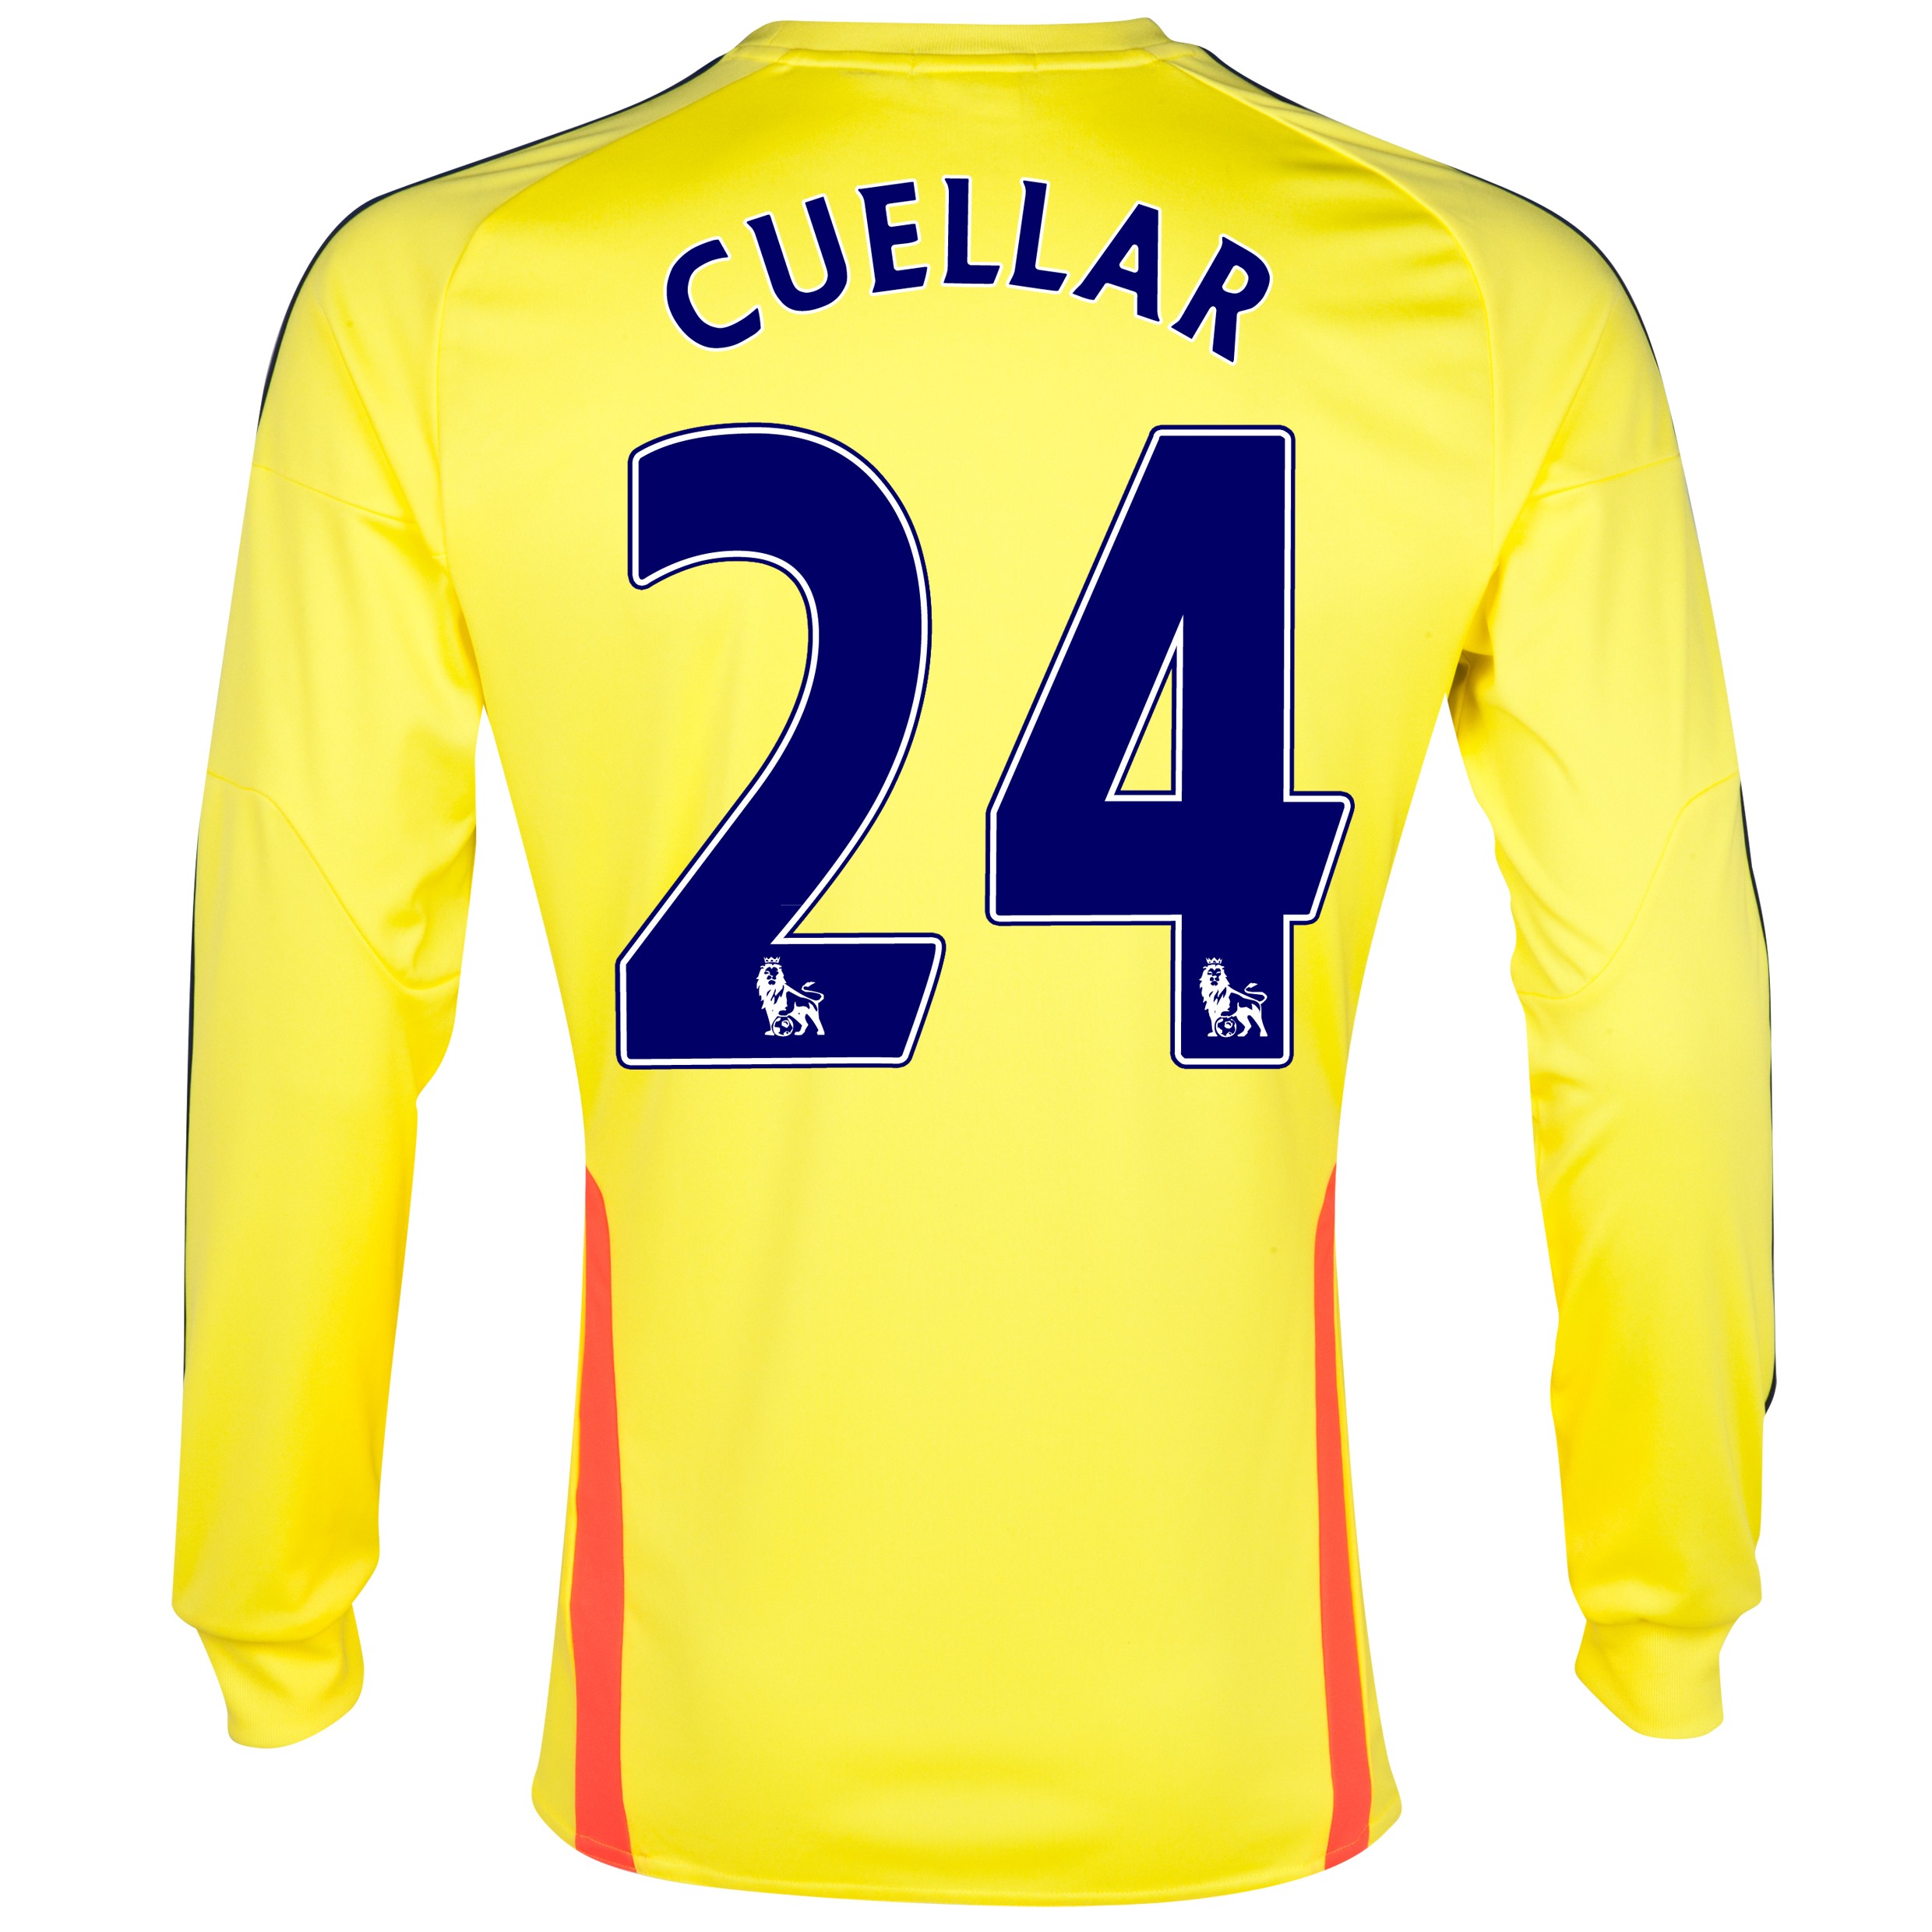 Sunderland Away Shirt 2013/14 - Long Sleeved with Cuellar 24 printing